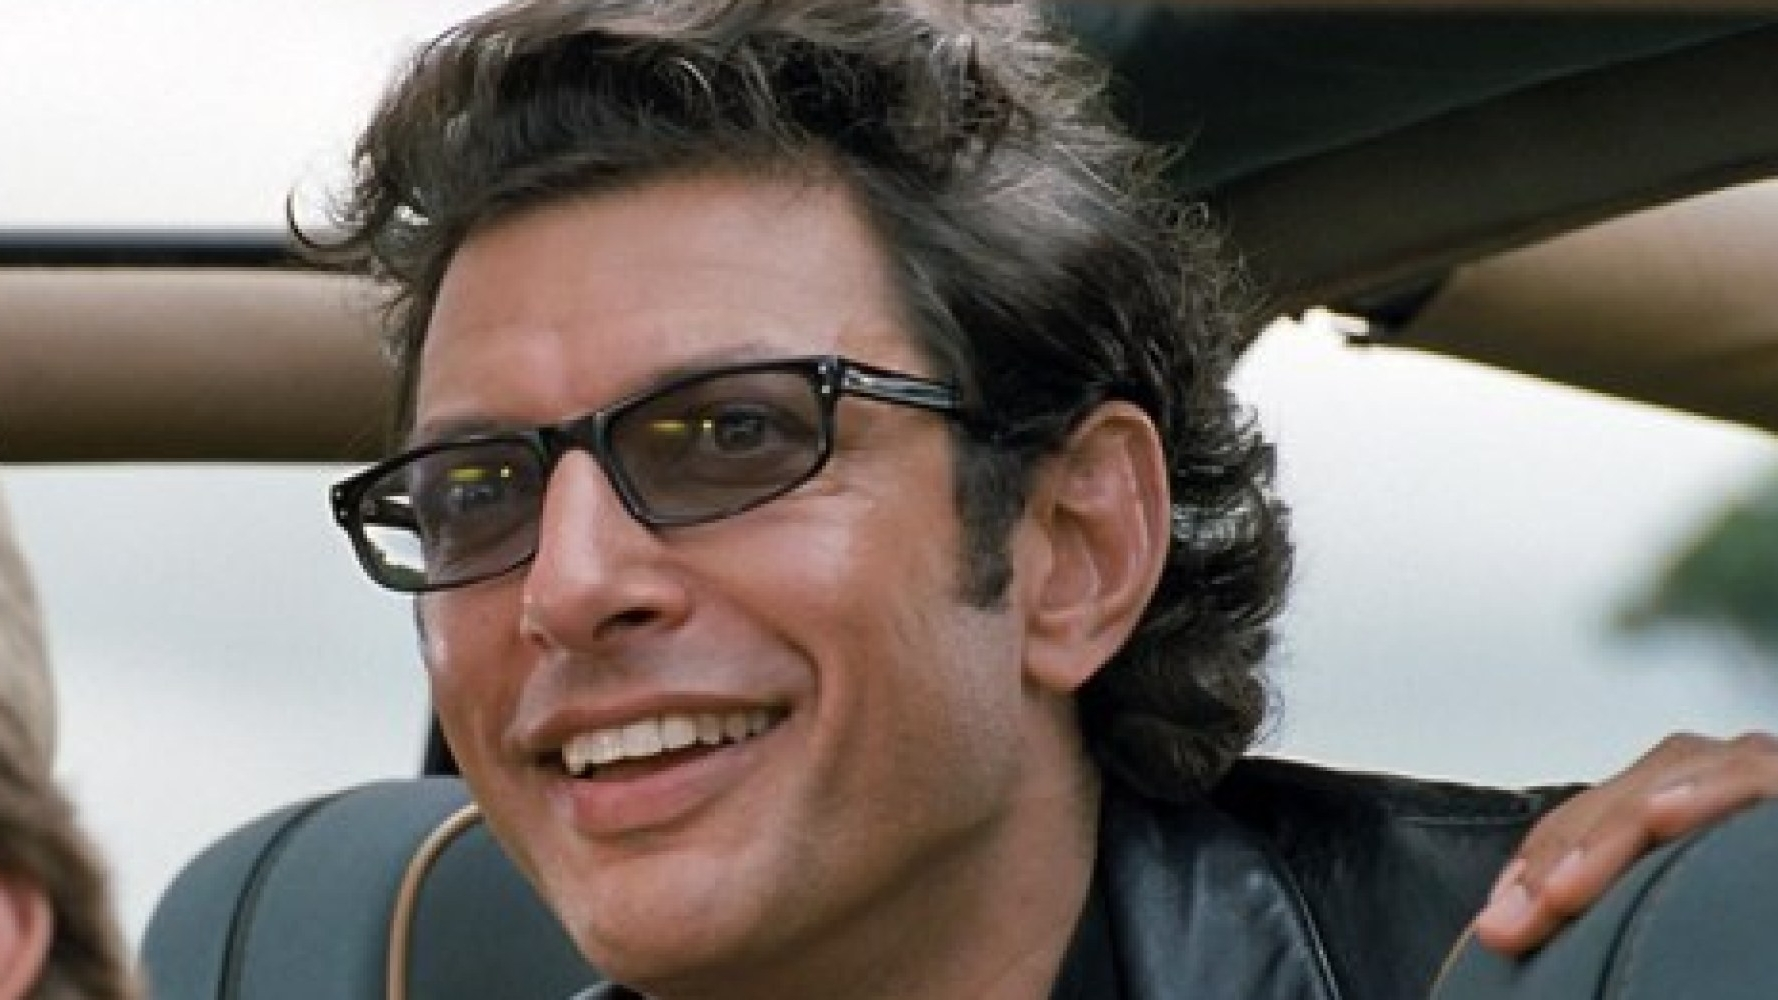 o-JEFF-GOLDBLUM-facebook.jpg